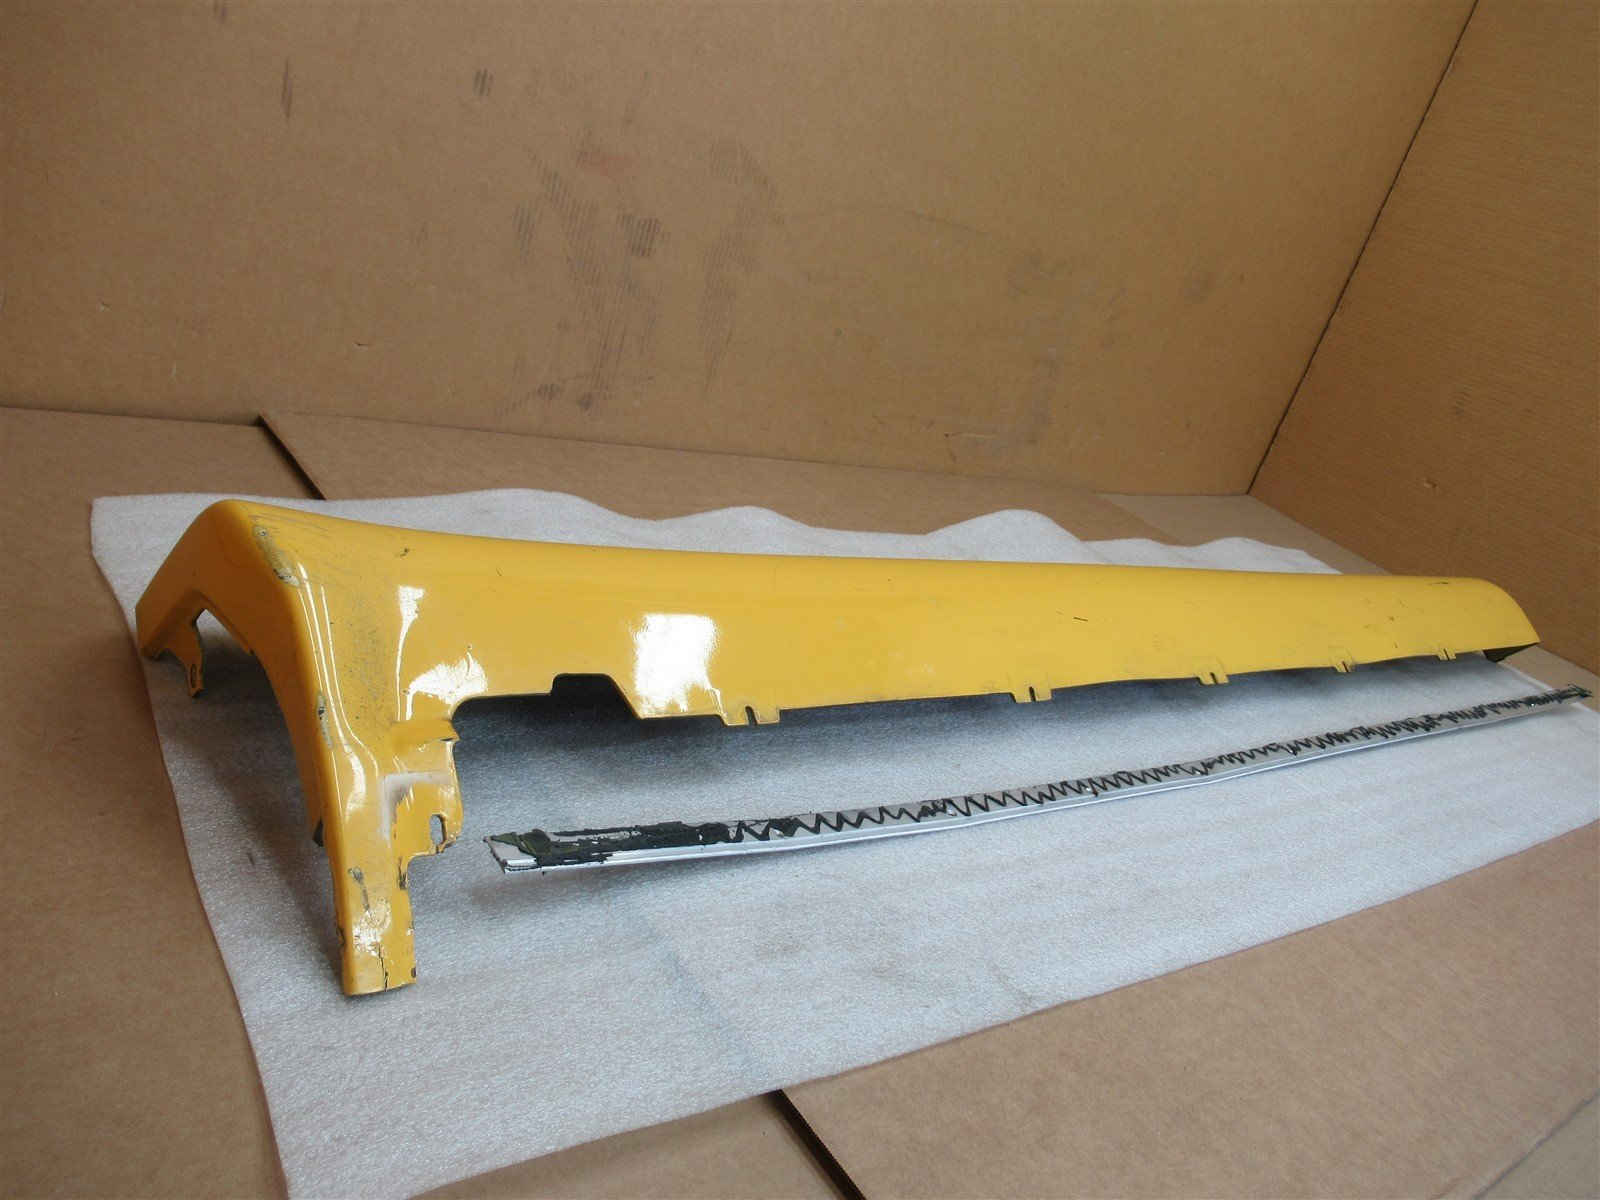 Porsche SIDE SKIRT ROCKER SIDE PANEL TRIM 98655998100